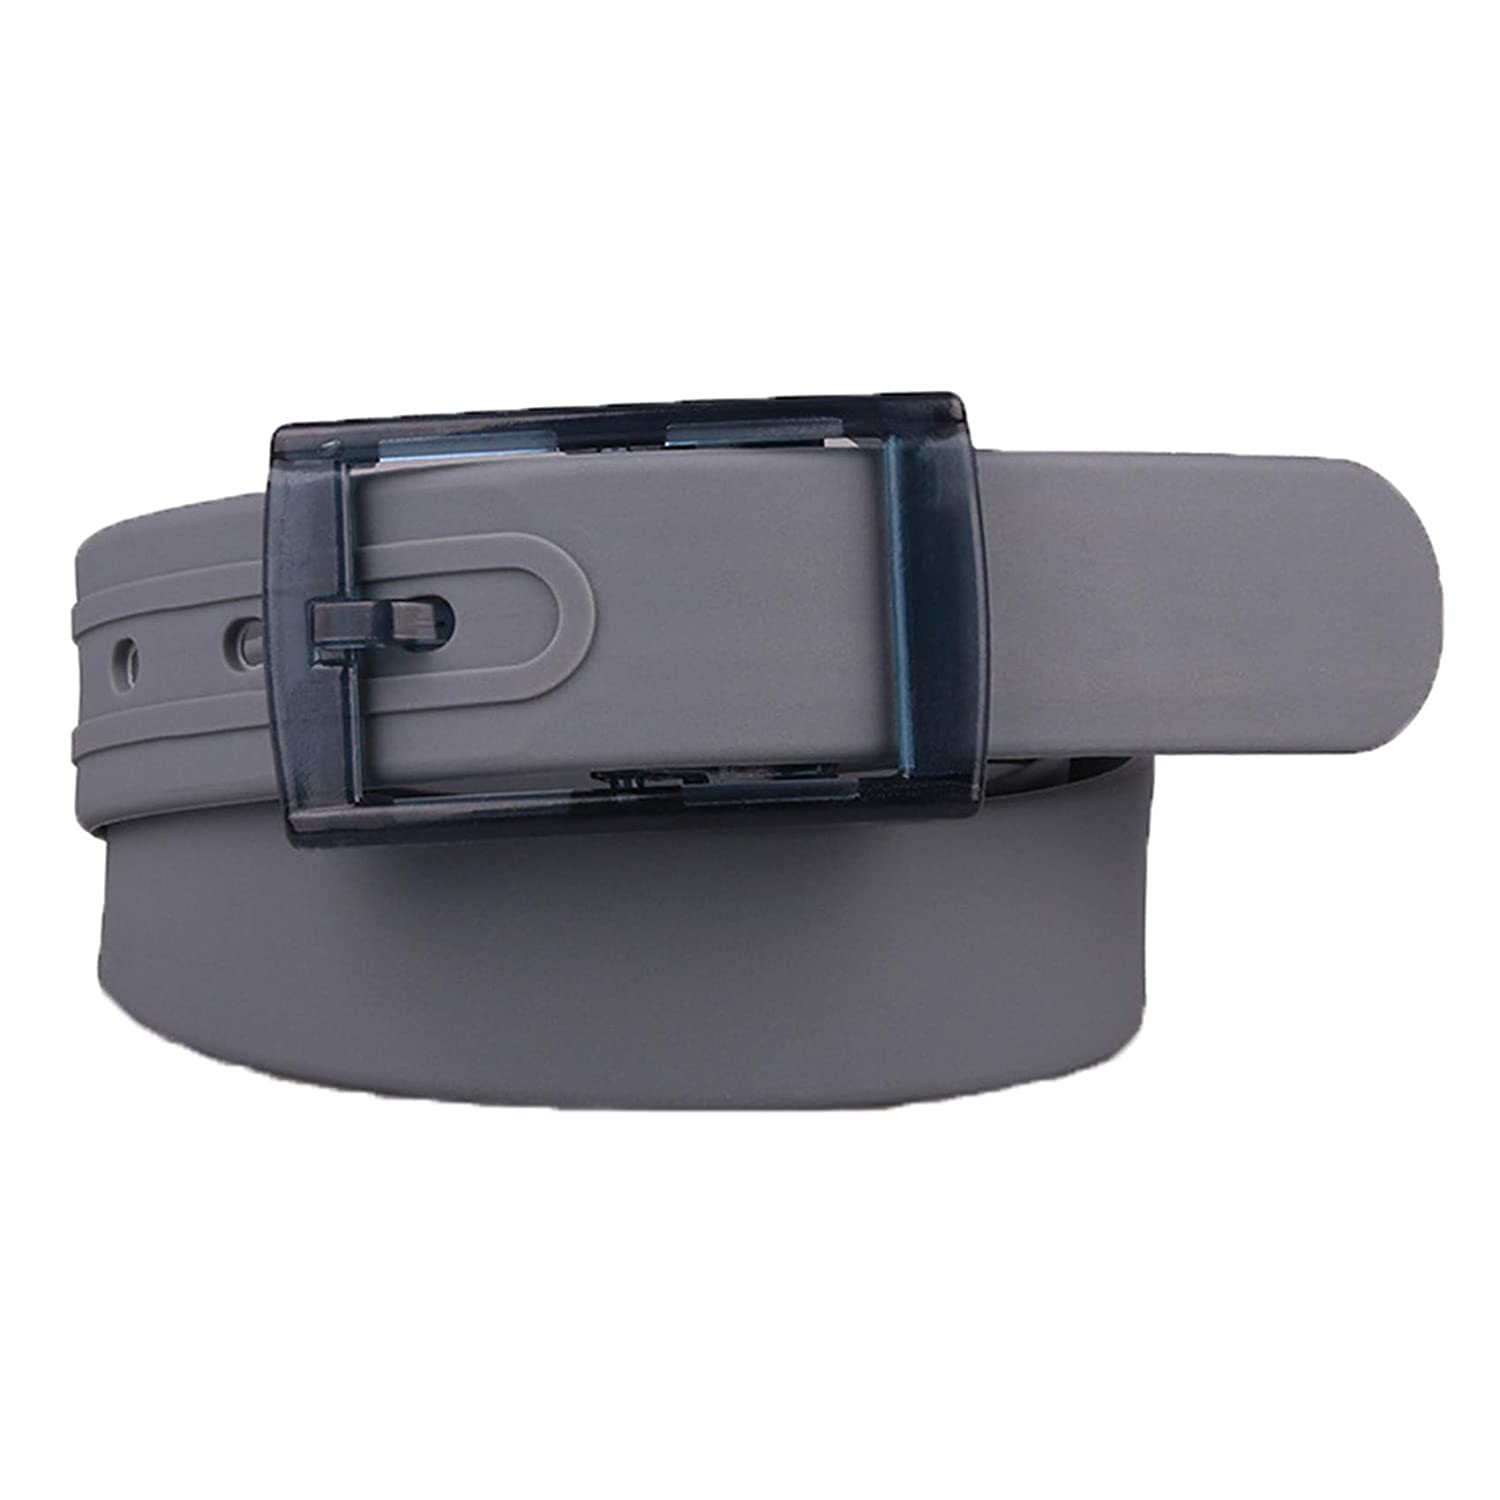 Unisex Women Men Adjustable Rubber Belt Casual Plastic Belt Silicone Belts with Plastic Buckle by Buenos Aire (Gray)